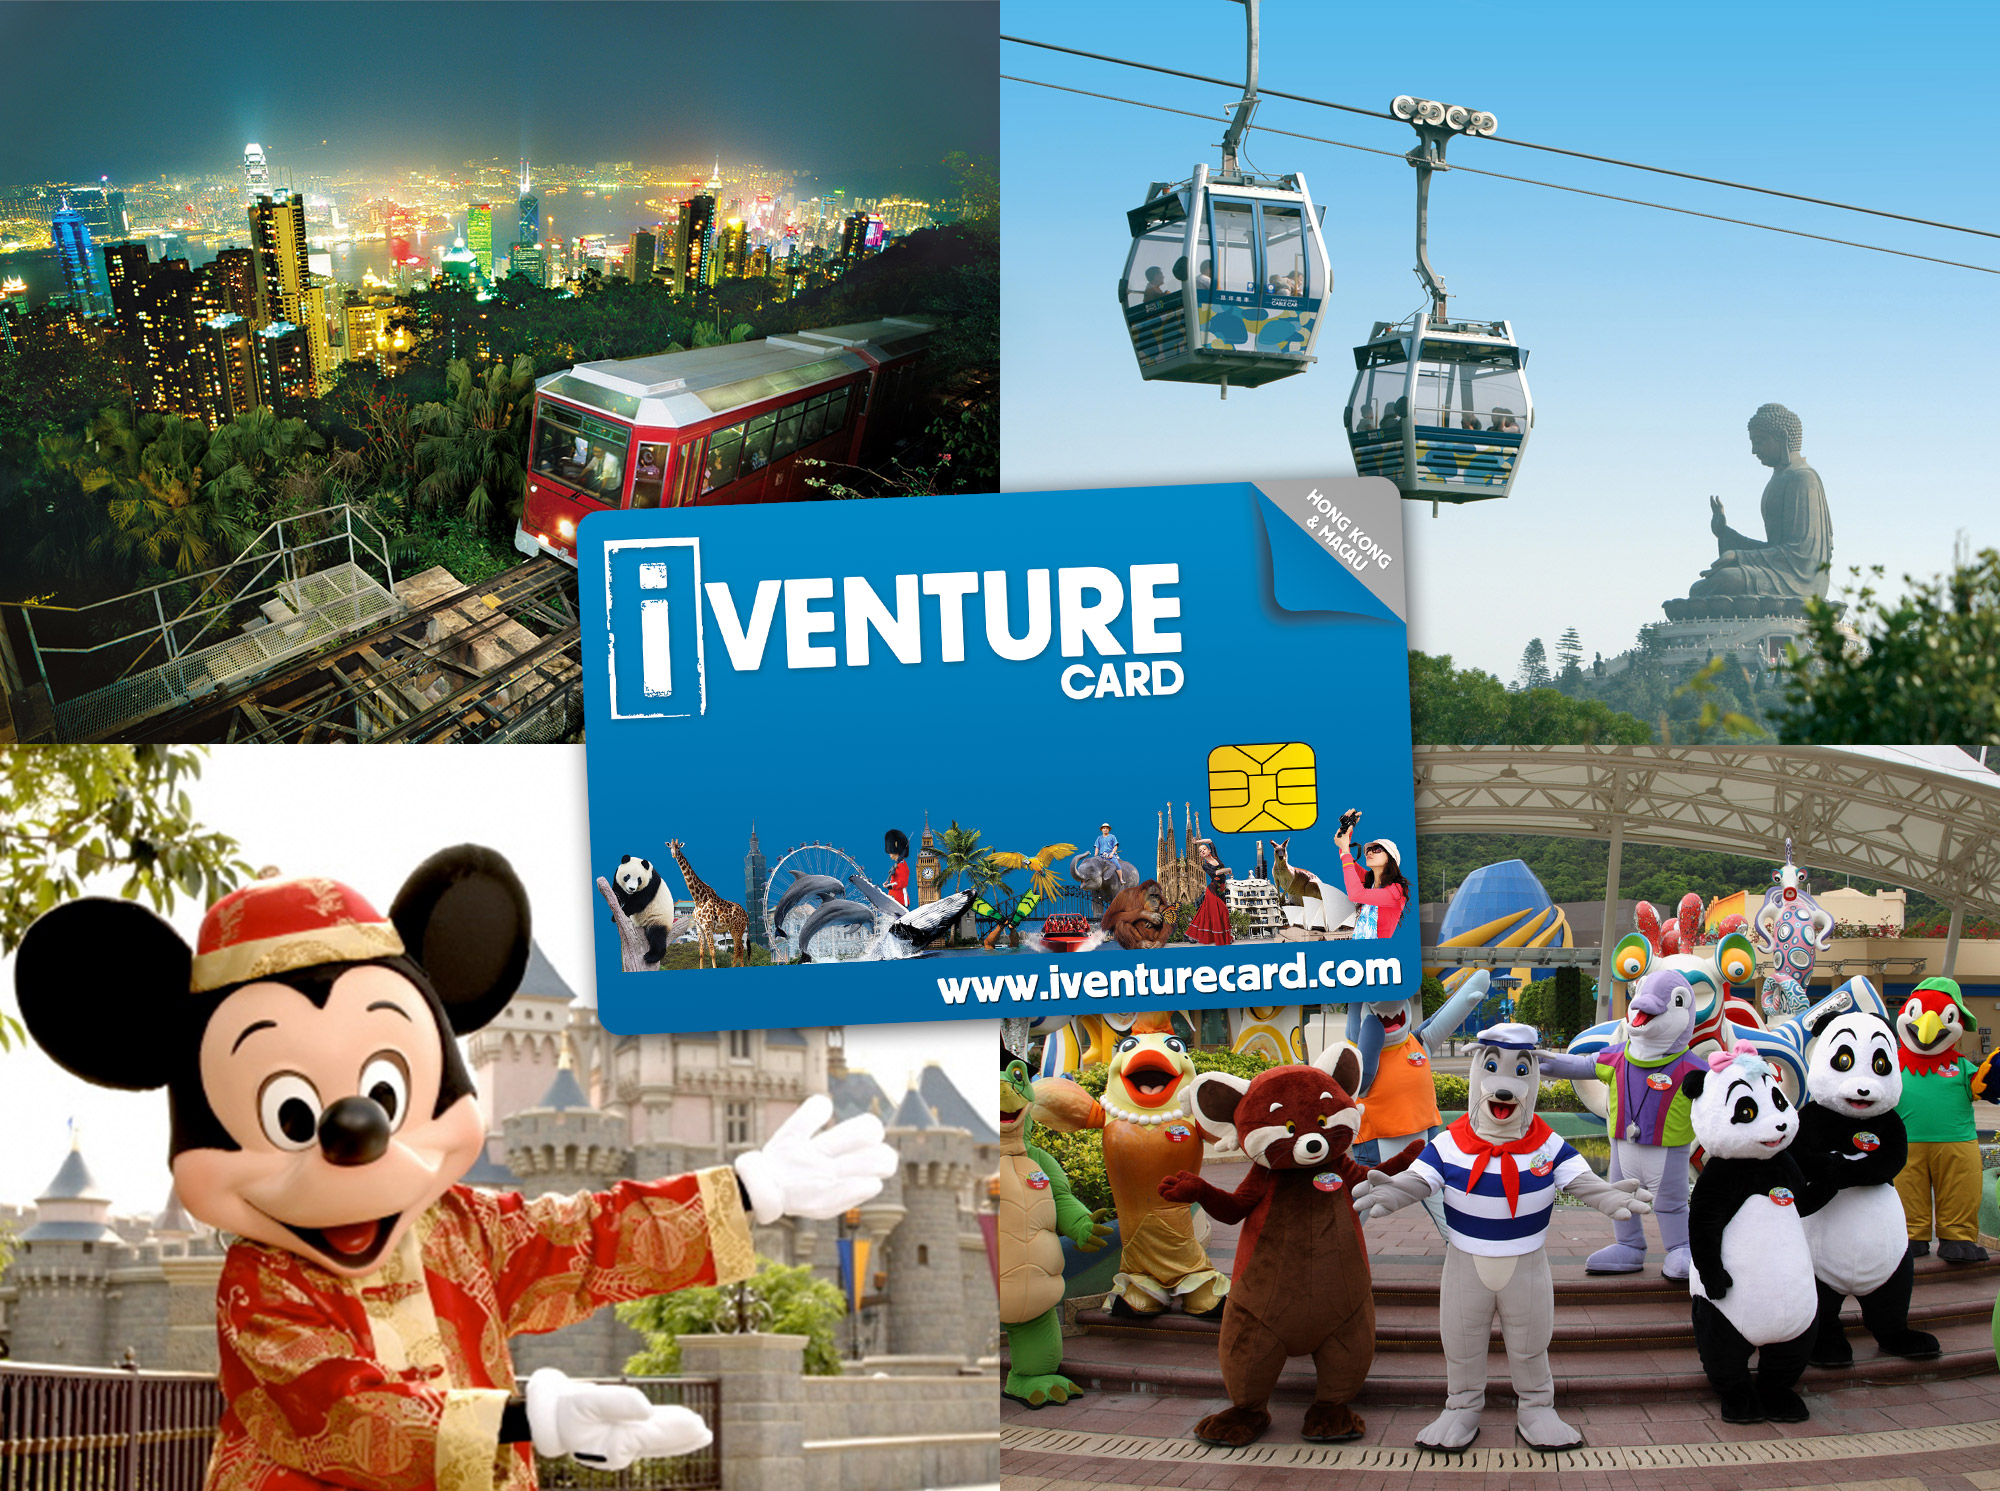 Save up to 50% on Hong Kong and Macau's top attractions